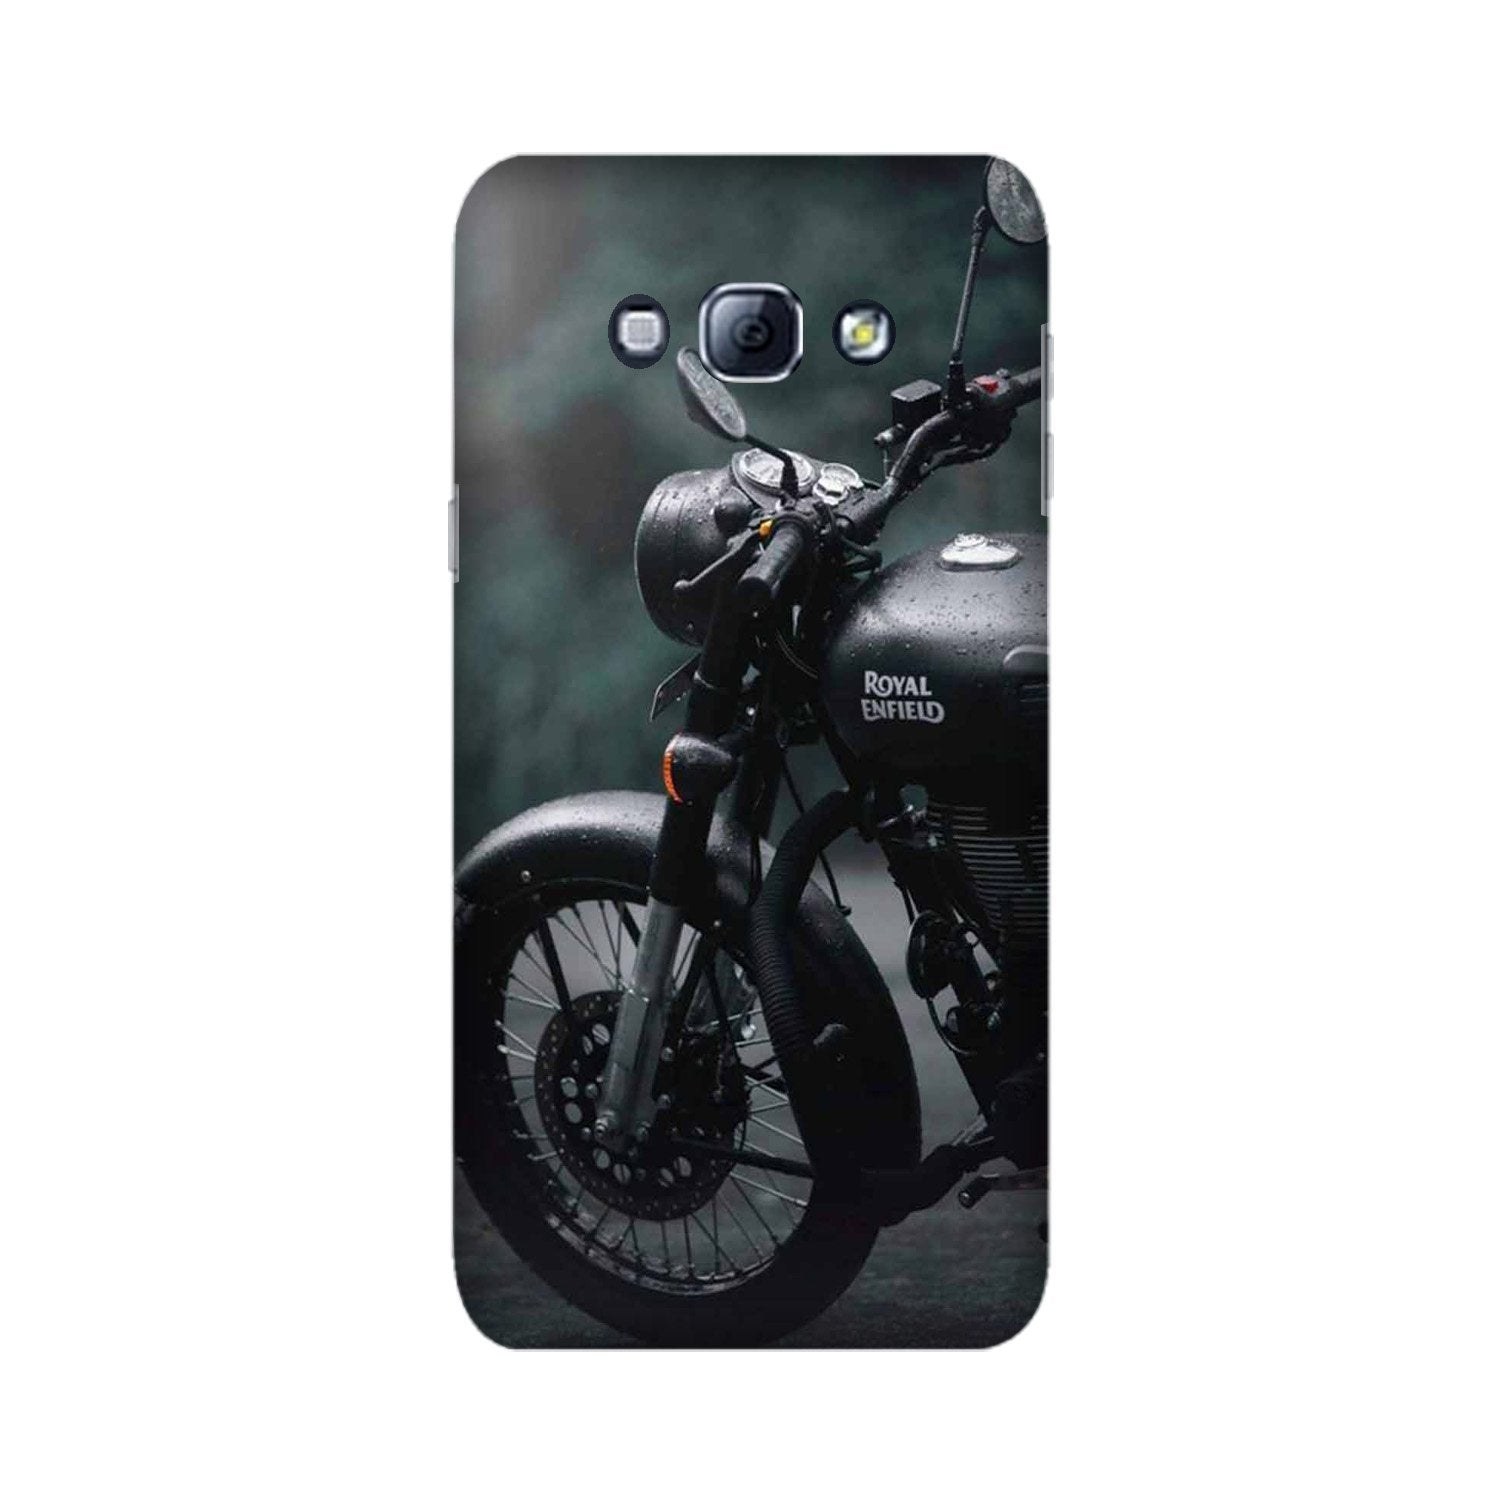 Royal Enfield Mobile Back Case for Galaxy A8 (2015)  (Design - 380)